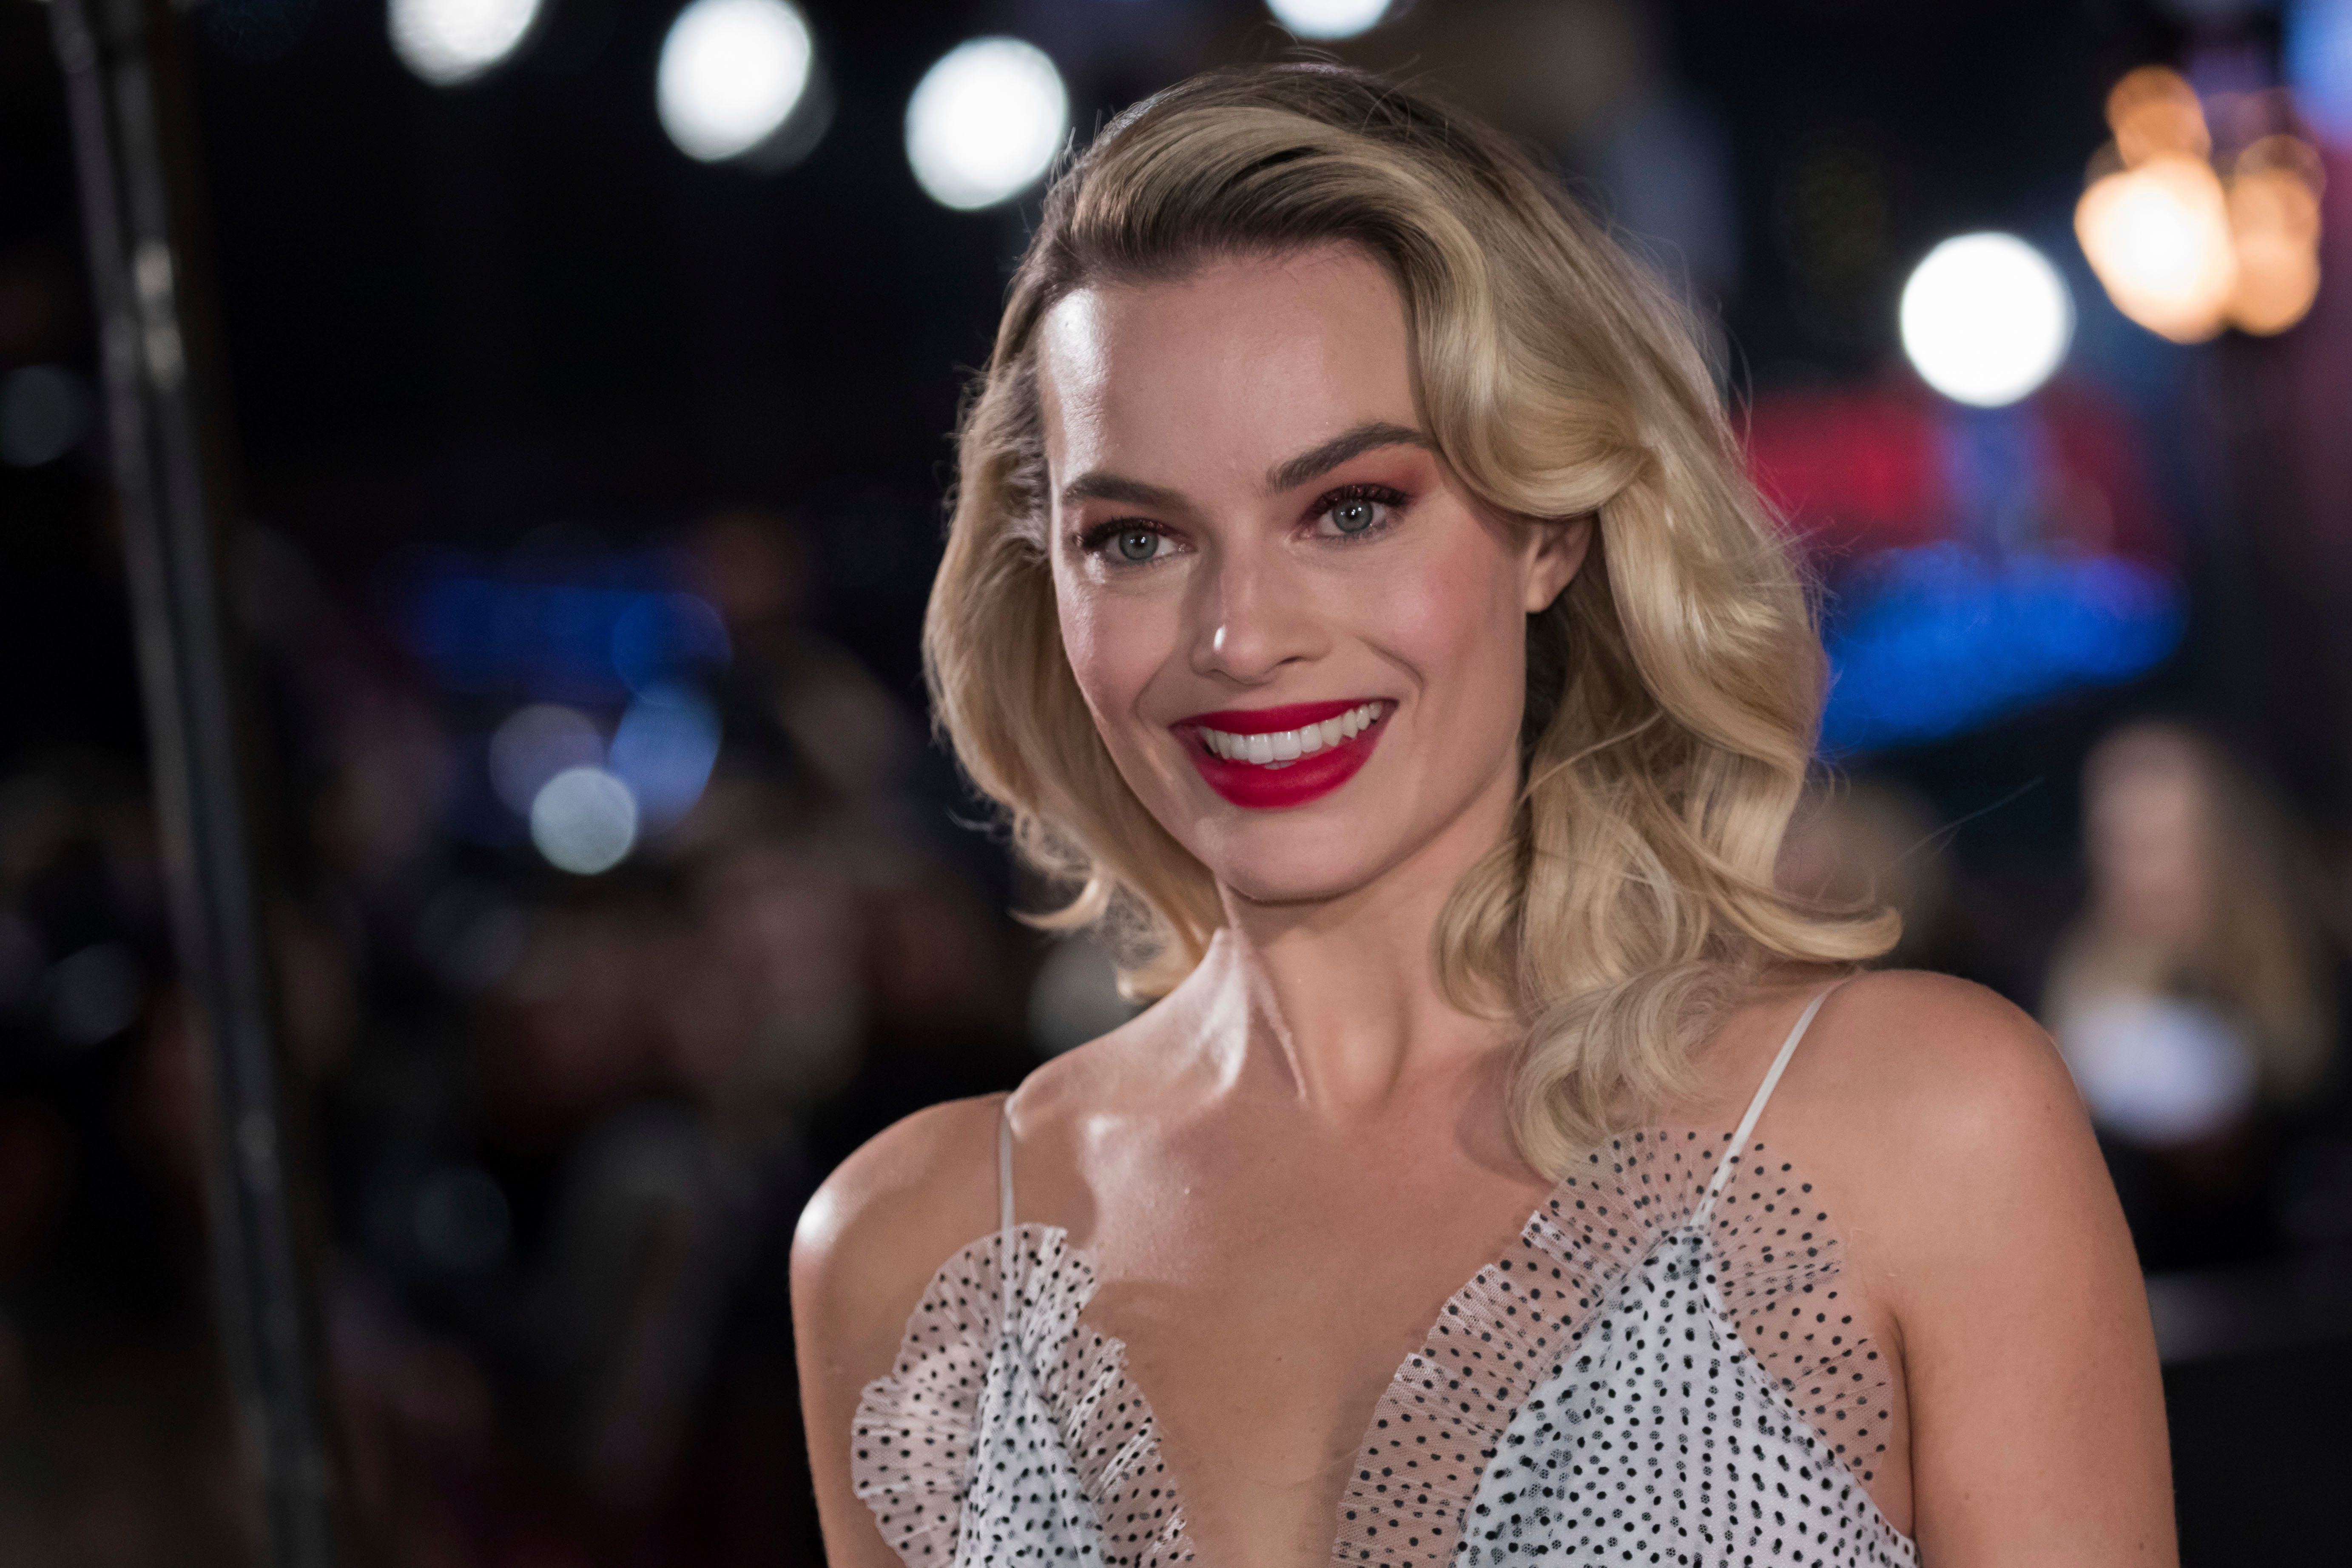 Margot Robbie is going to star in a live-action Barbie movie